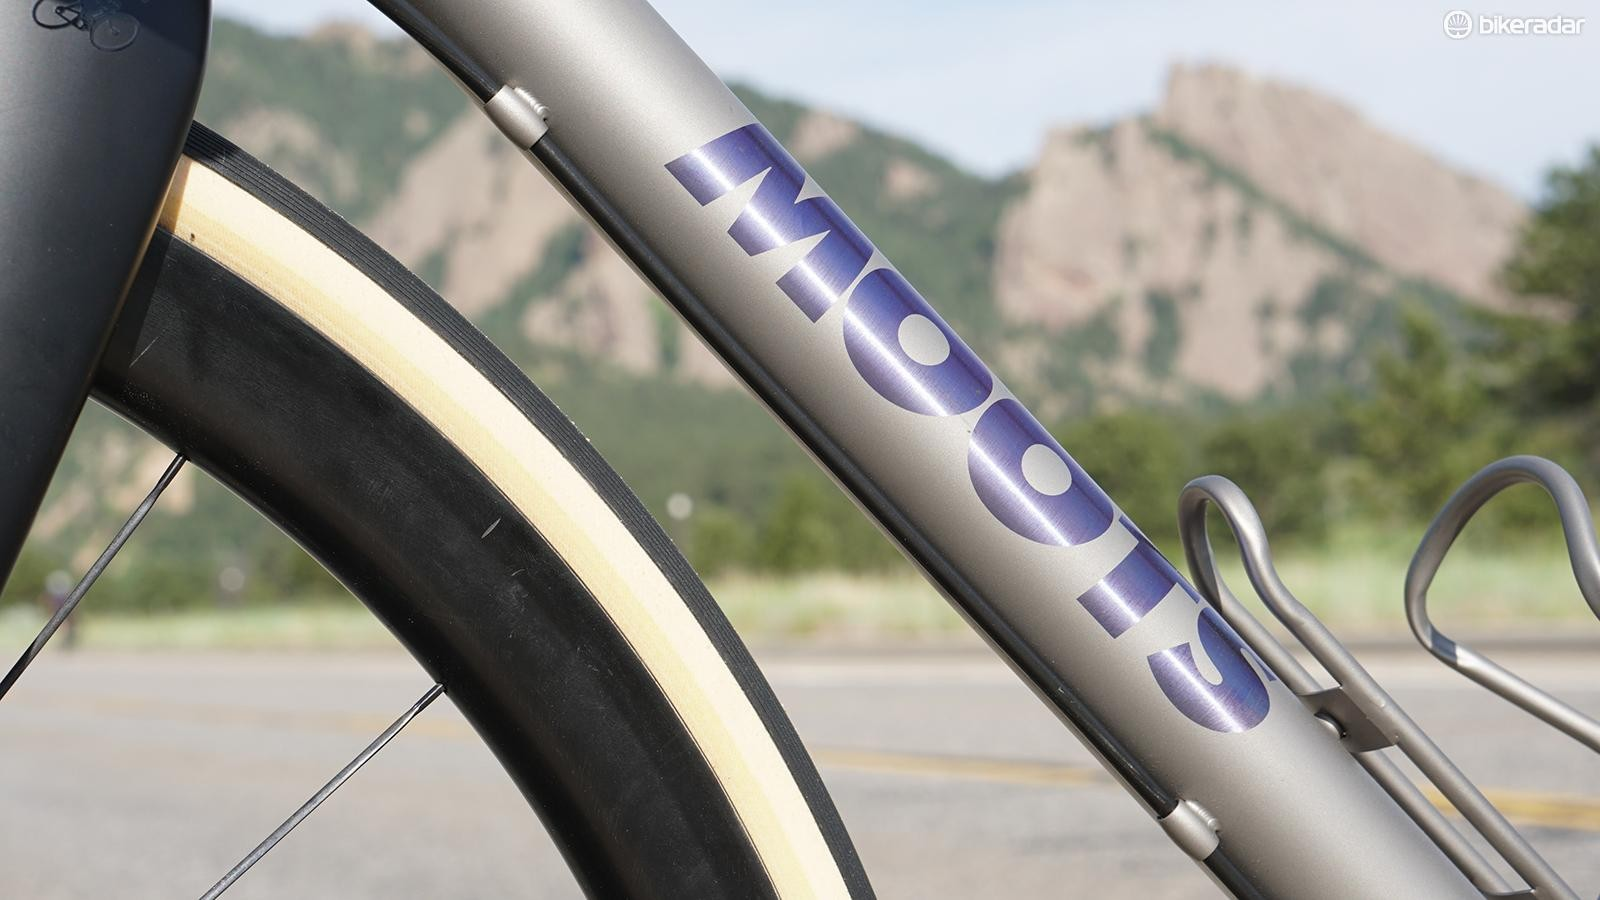 While most companies opt for internal routing, Moots keeps the hydraulic lines external